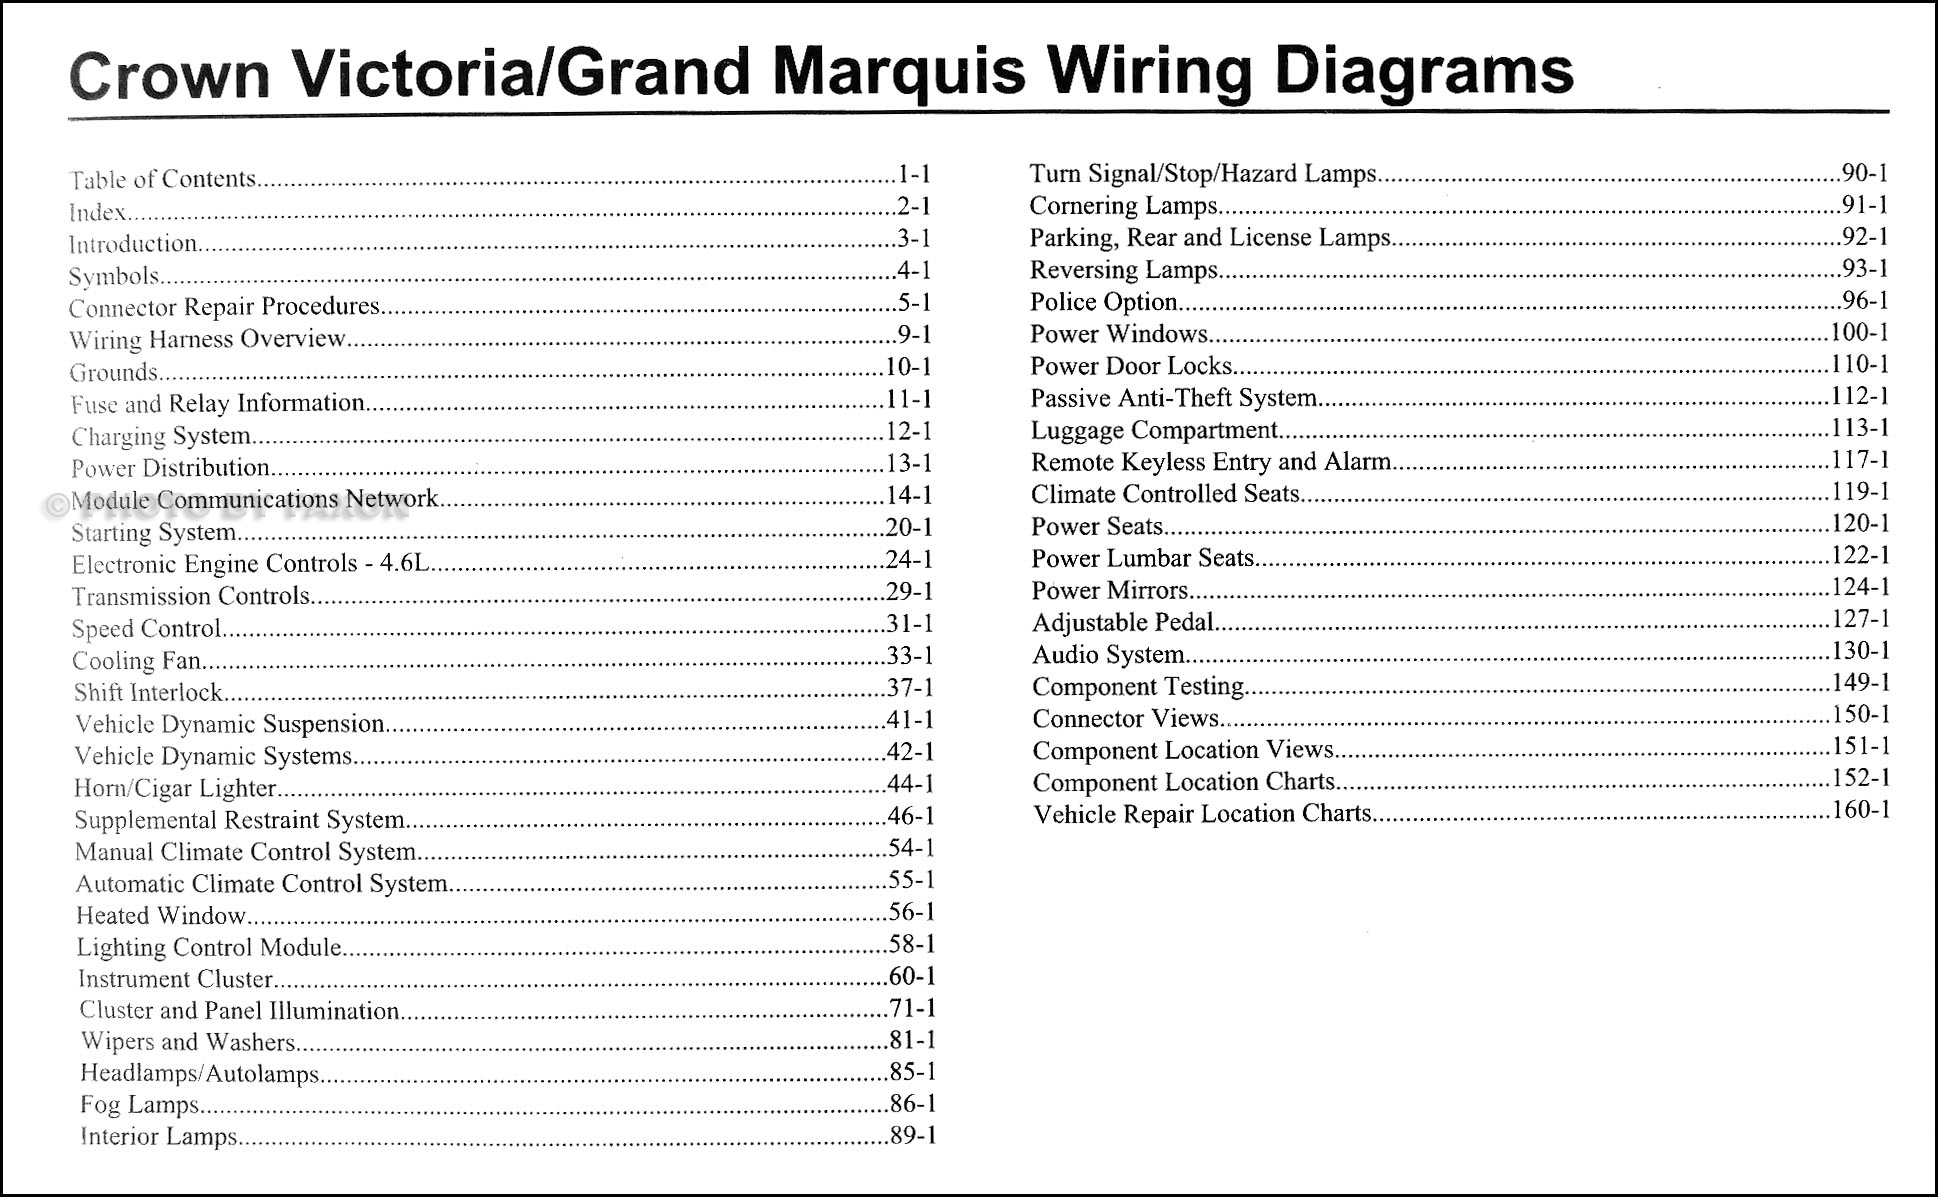 2009FordCrownVictoriaOWD TOC 2009 crown victoria & grand marquis original wiring diagram manual crown vic wiring diagram at virtualis.co